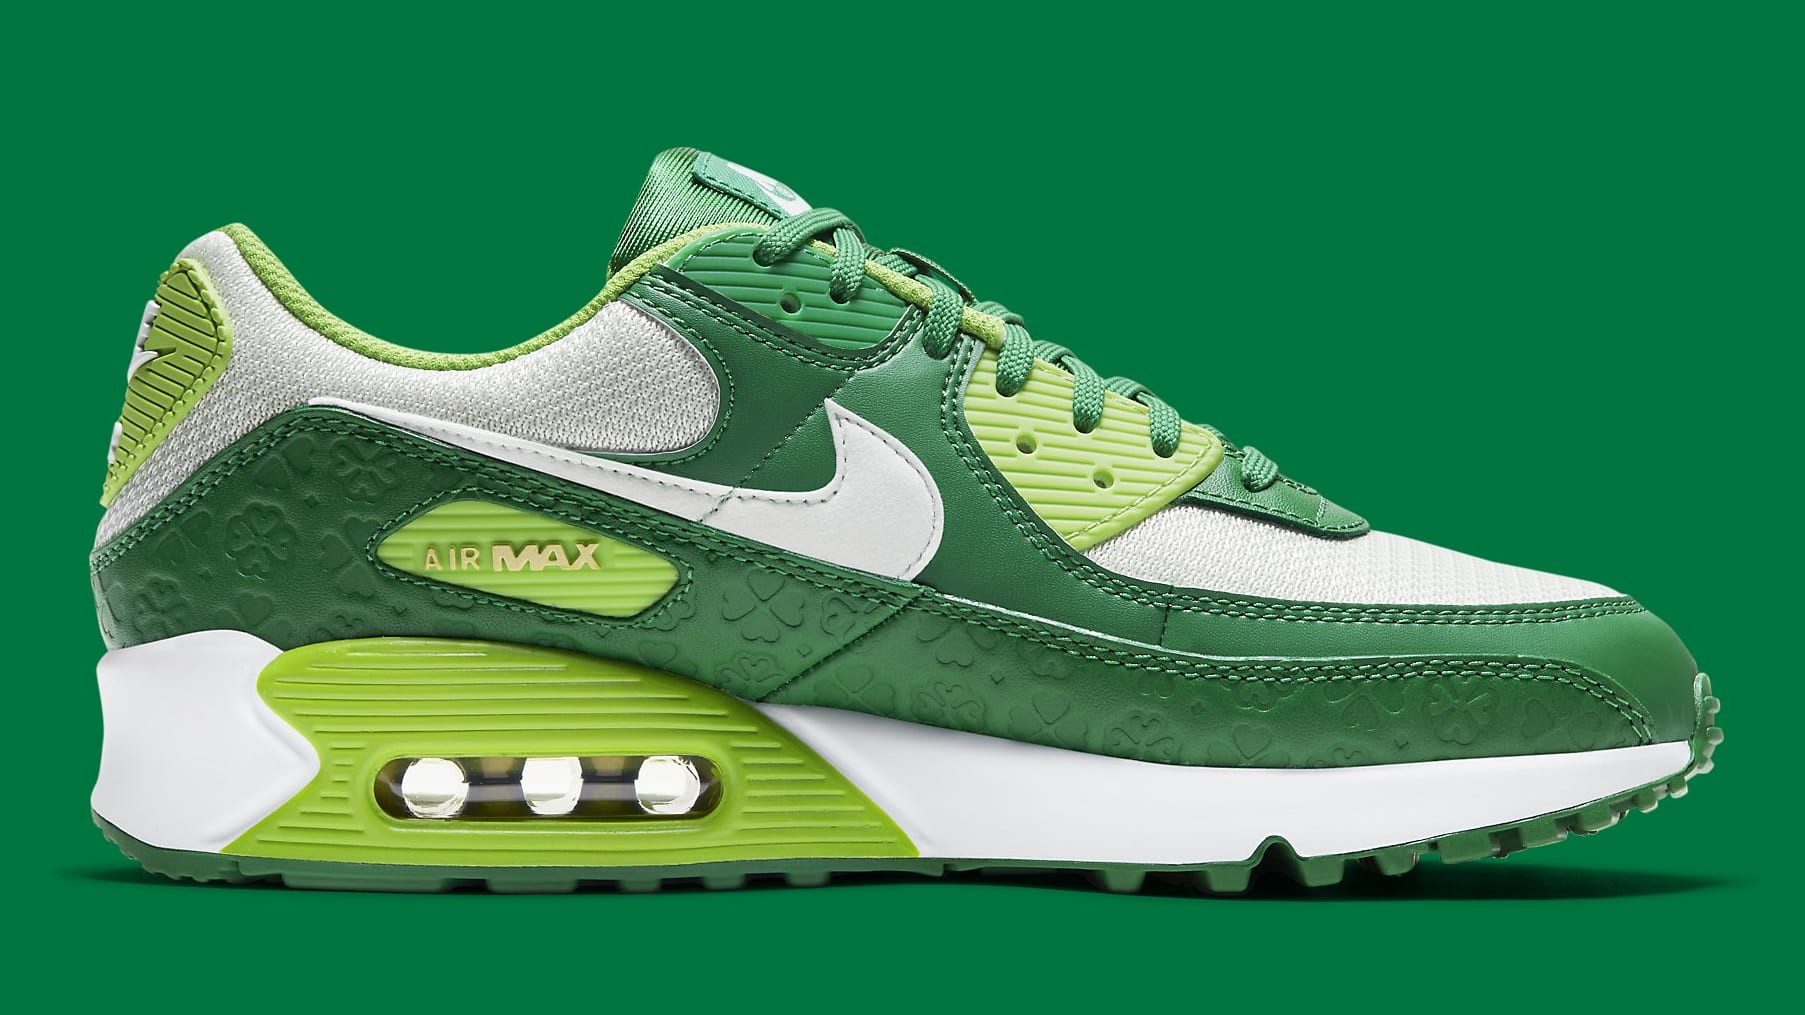 Nike Air Max 90 St. Patrick's Day Release Date DD8555-300 Medial